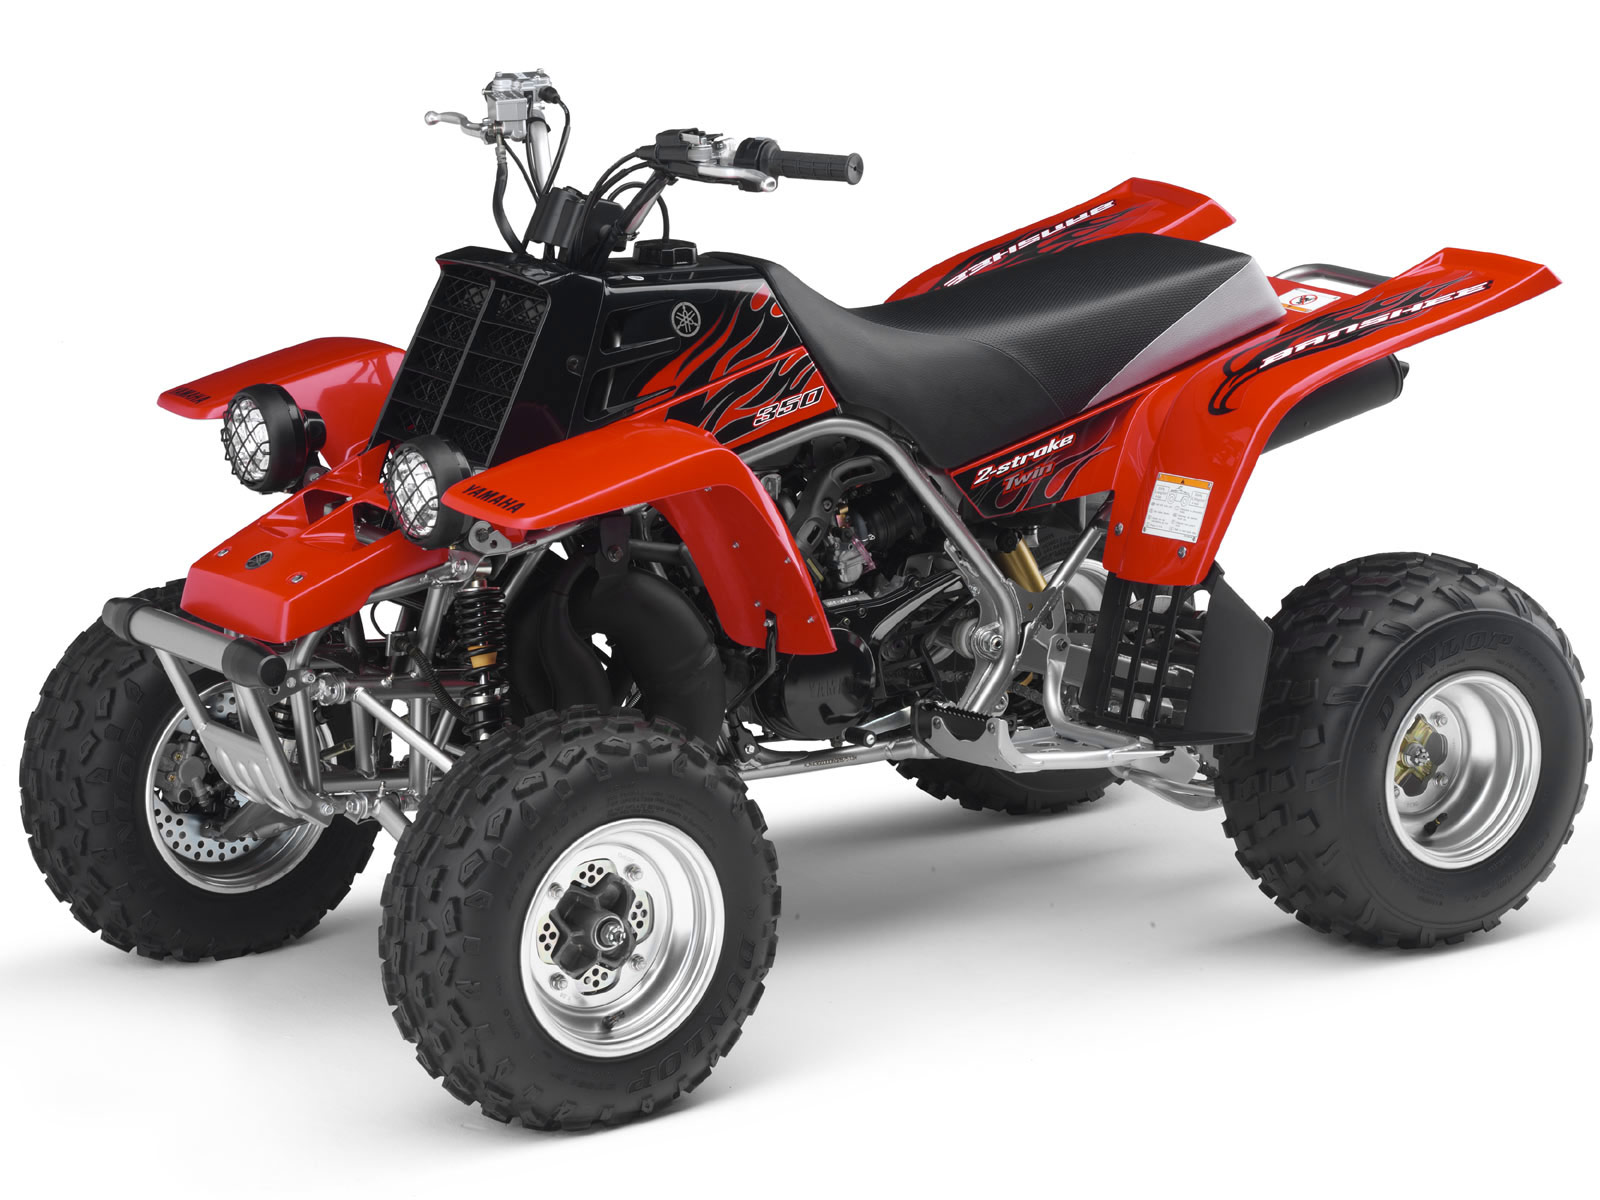 YAMAHA ATV pictures. 2006 Banshee 350 Accident lawyers info.